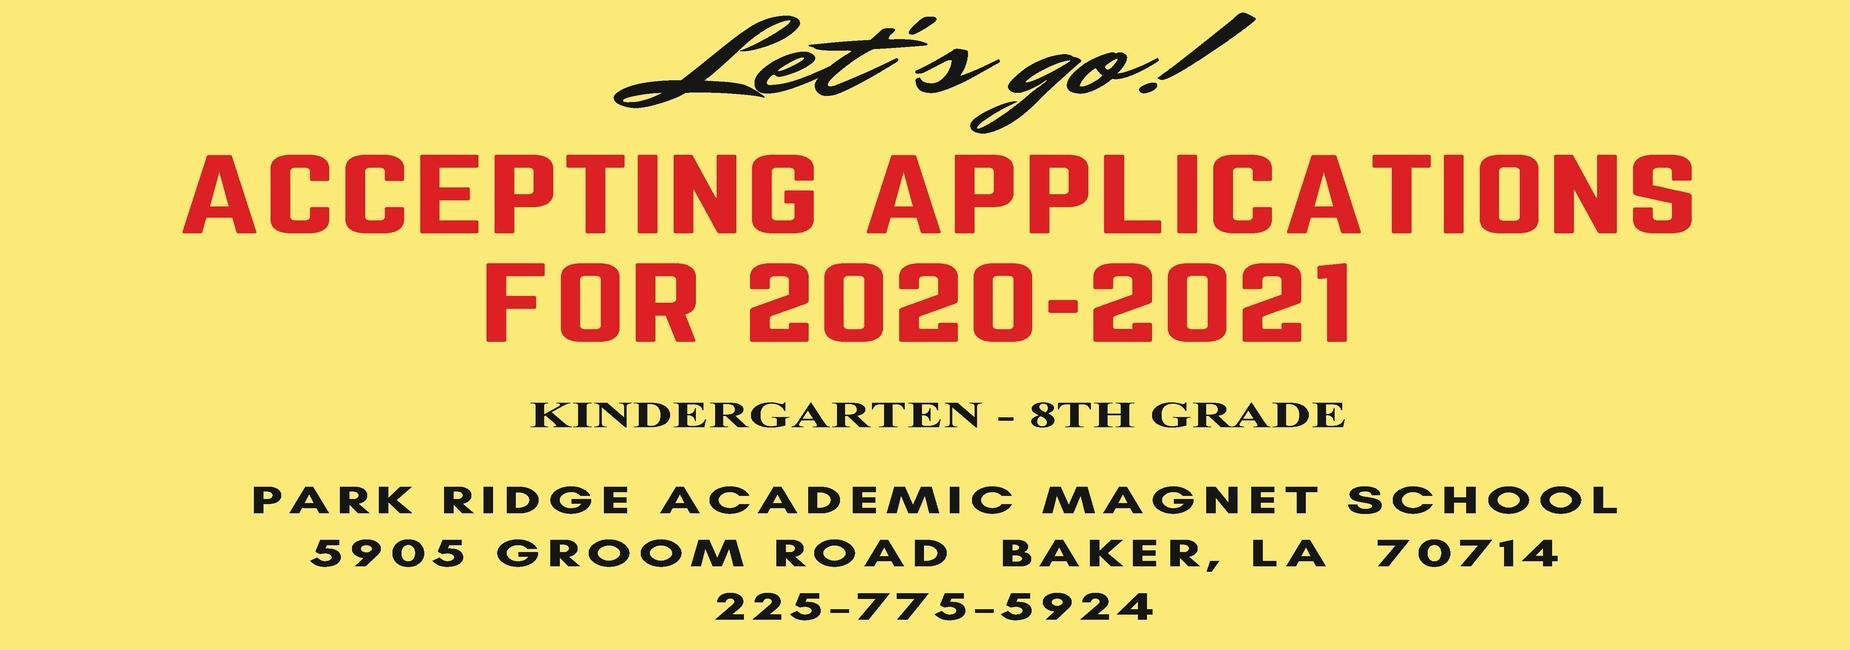 a photo banner advertising Park Ridge accepting K through 8 grade applications for the 2020, 2021 school year